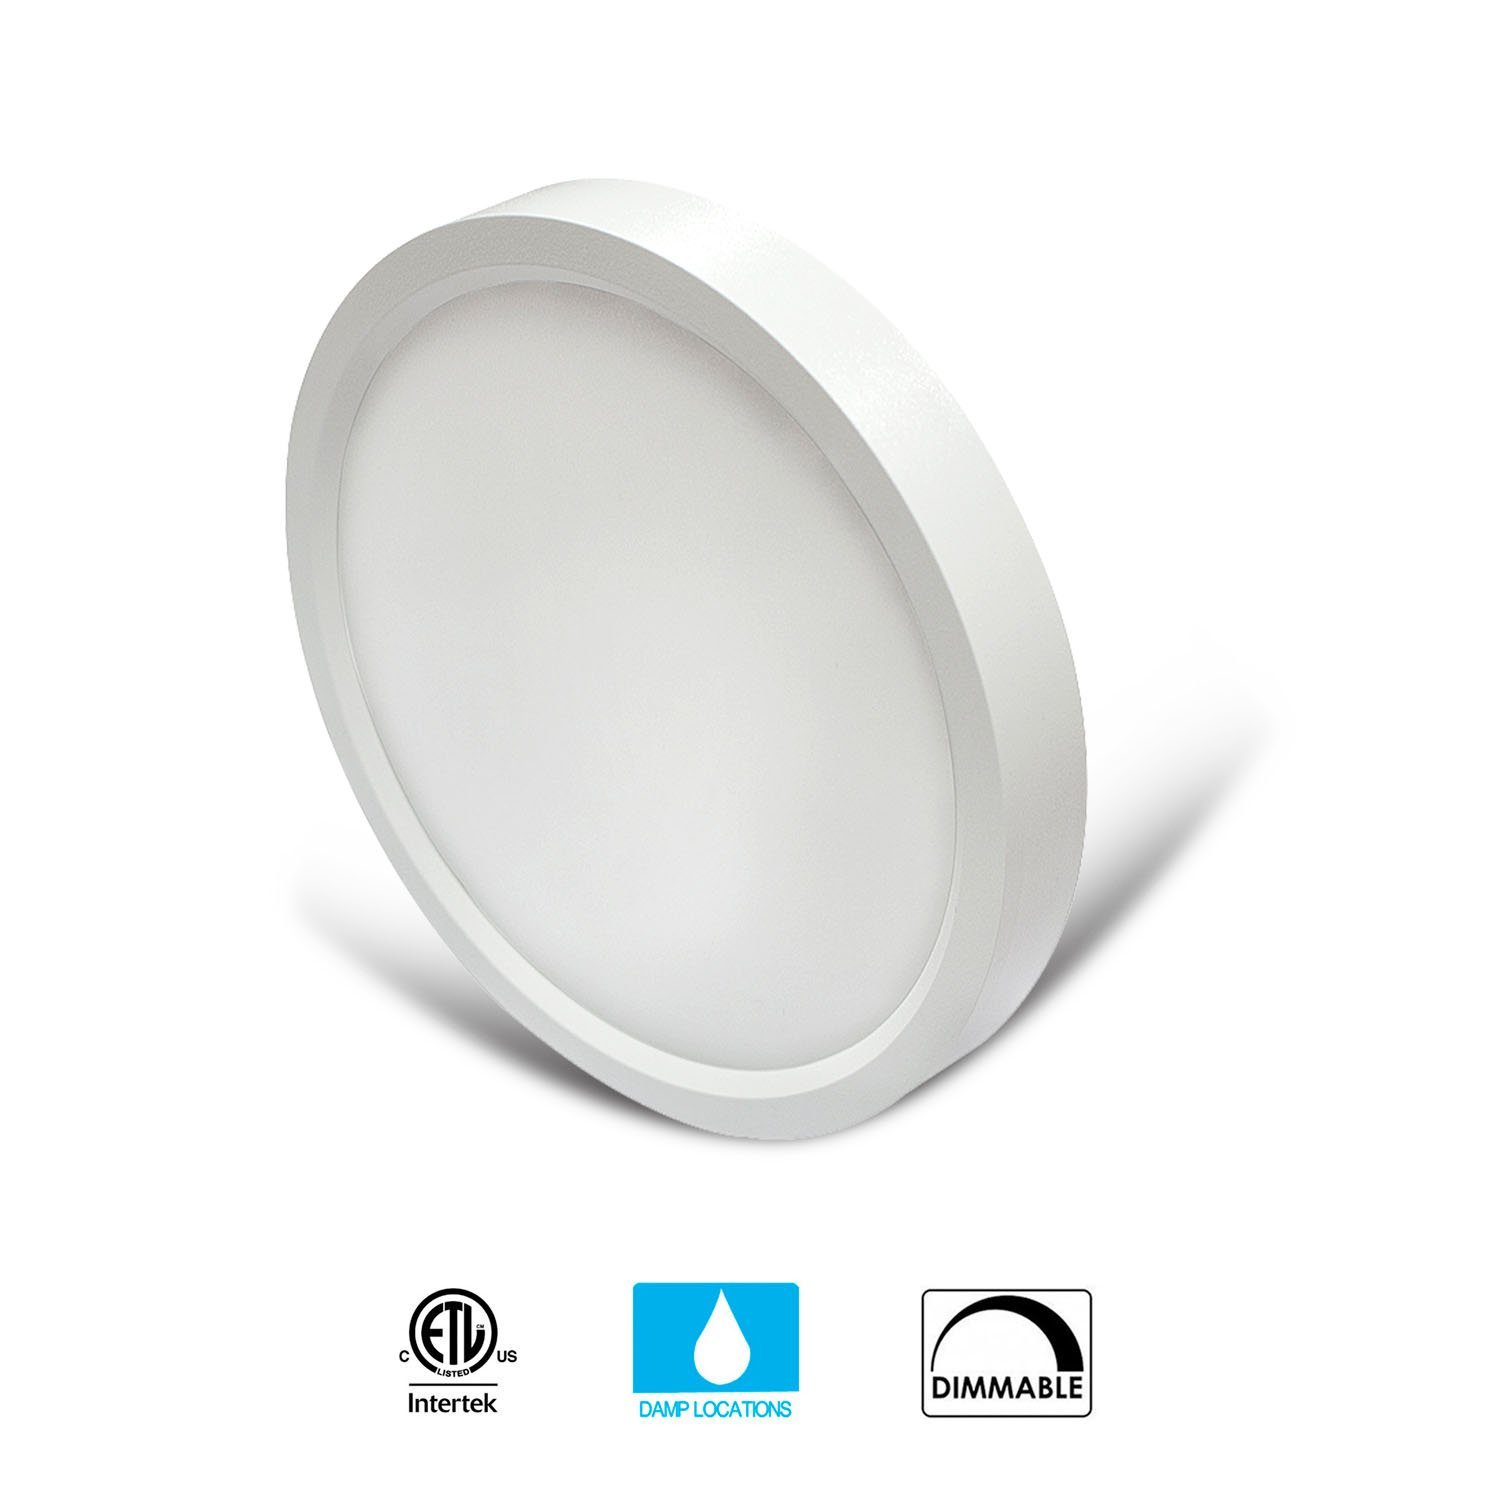 JULLISON 7 inch LED Slim Surface Mount Ceiling Light Fixture, 120V, 15W, 900LM, 3000K Warm White, CRI80, Driverless, ETL Certified, Damp Location, White - Round, 1 Pack